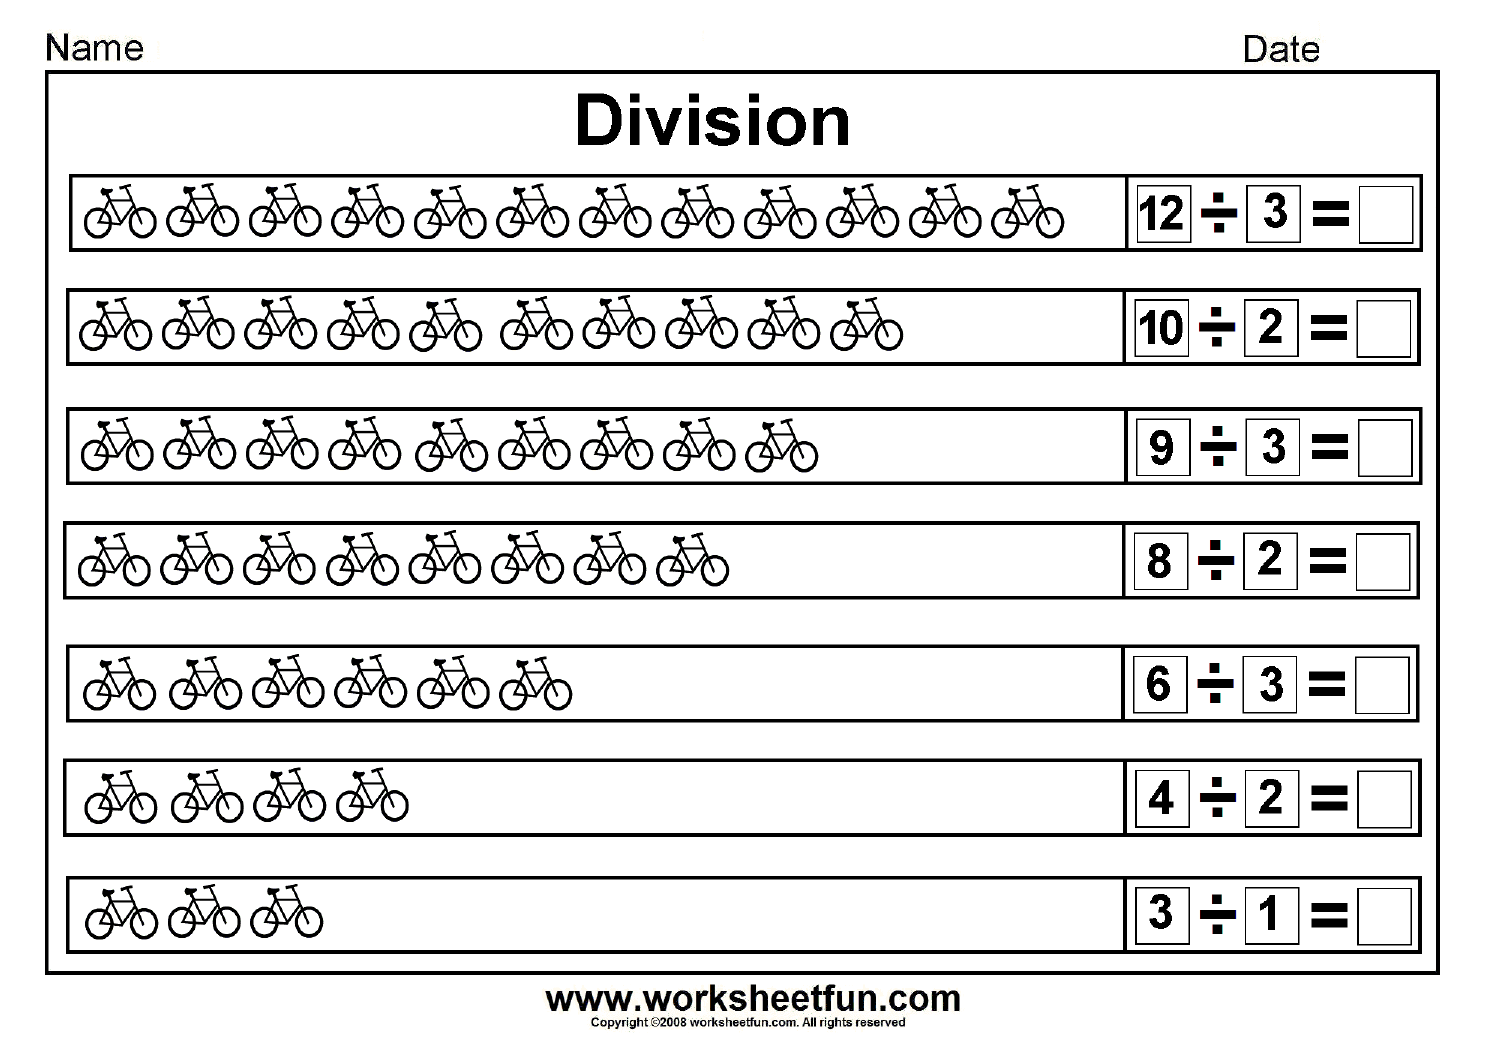 medium resolution of Division worksheets on worksheetfun.com   Division worksheets